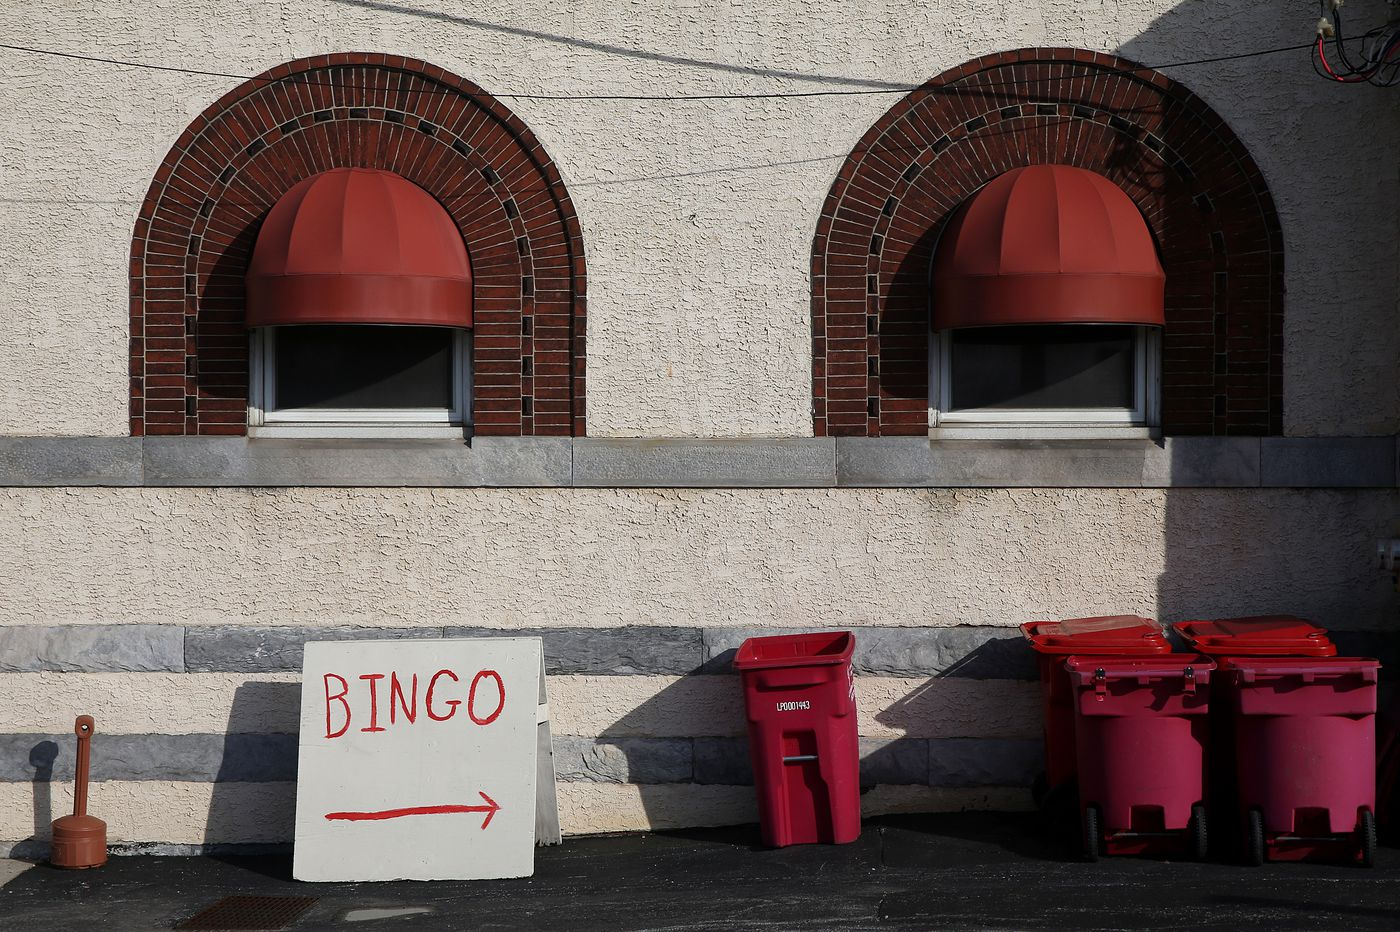 South Jersey women charged after bingo cheating attempt allegation